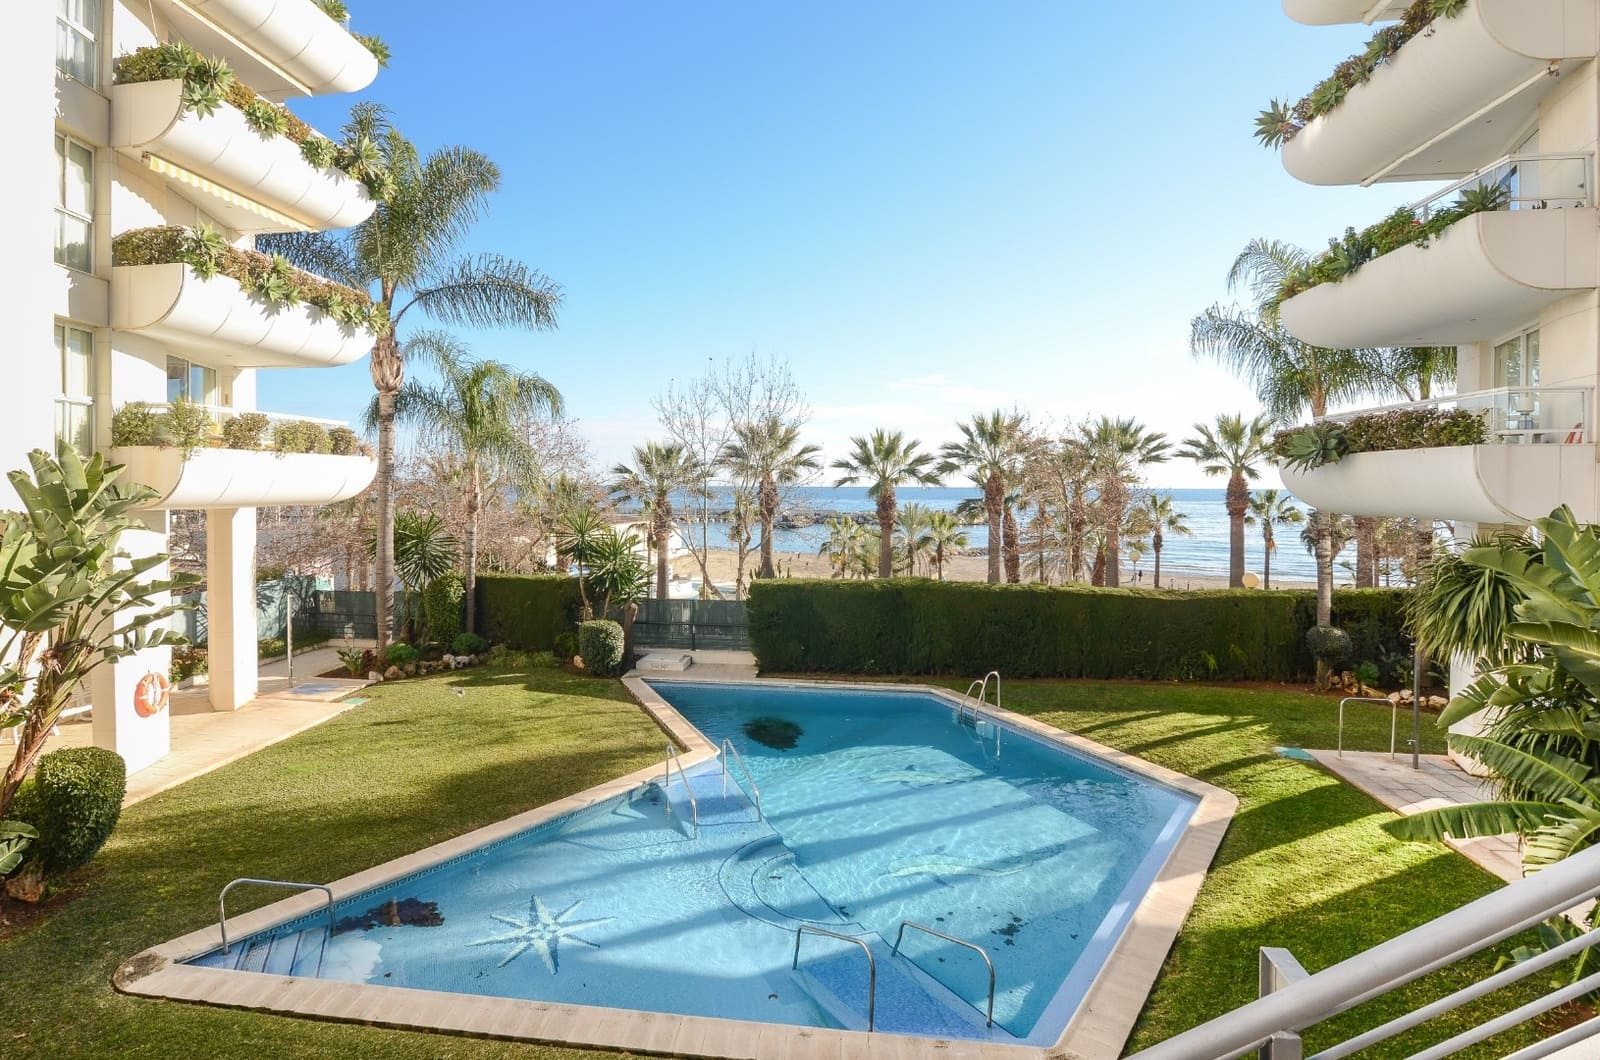 2 bedroom Apartment for sale in Marbella with pool garage - € 370,000 (Ref: 5061387)